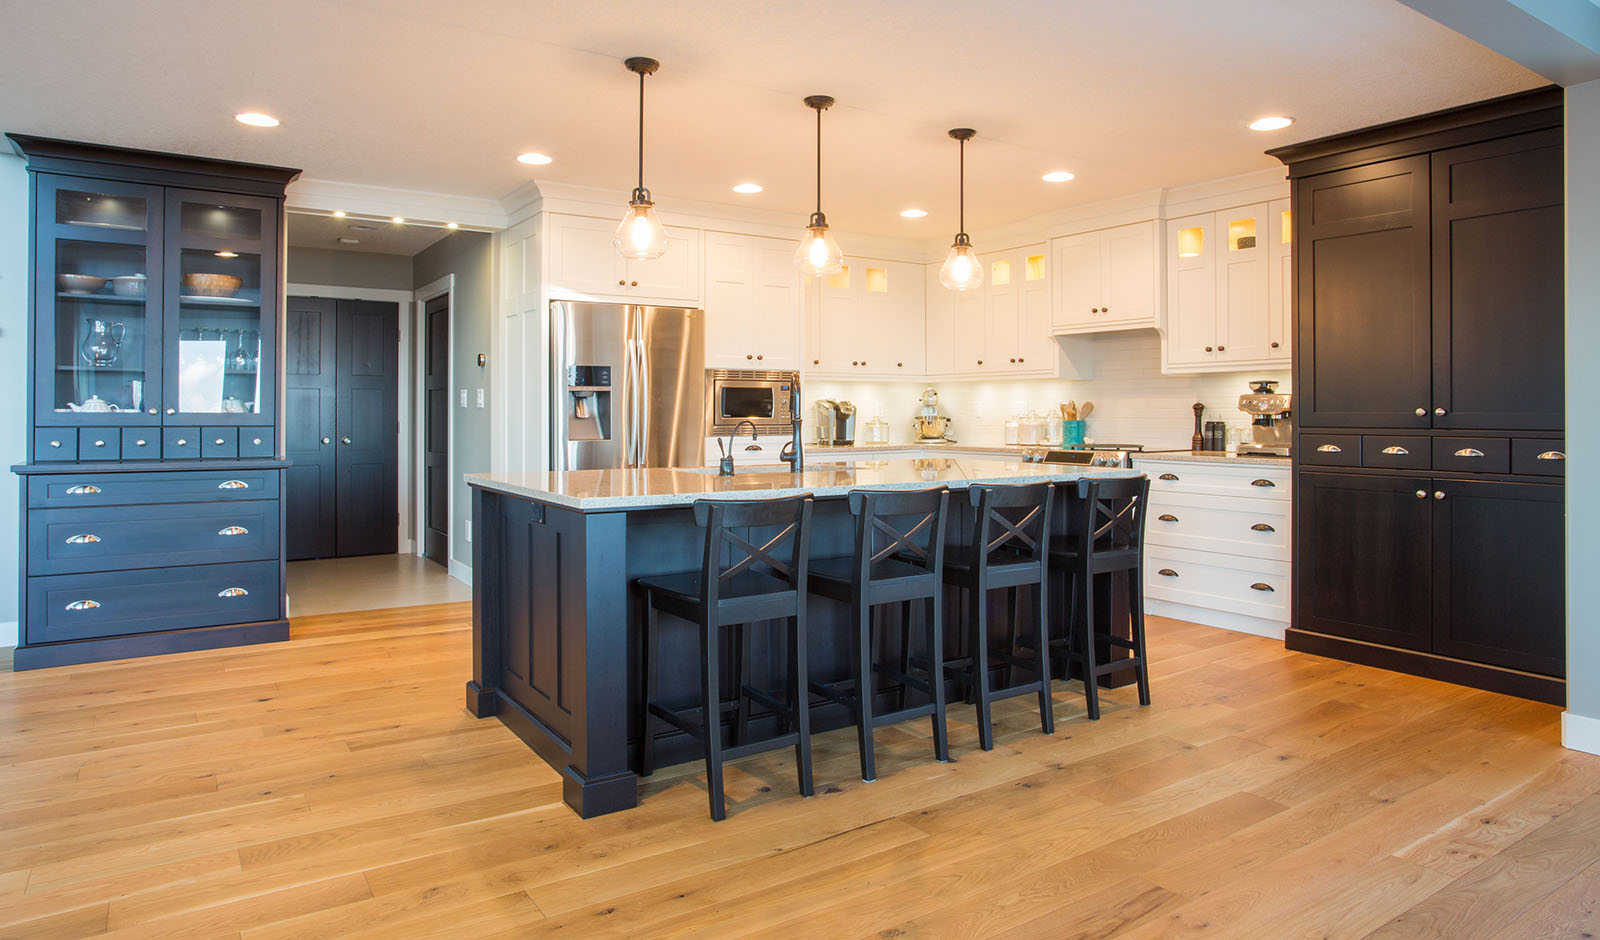 Custom kitchen with built in appliances, hard wood floors, and l